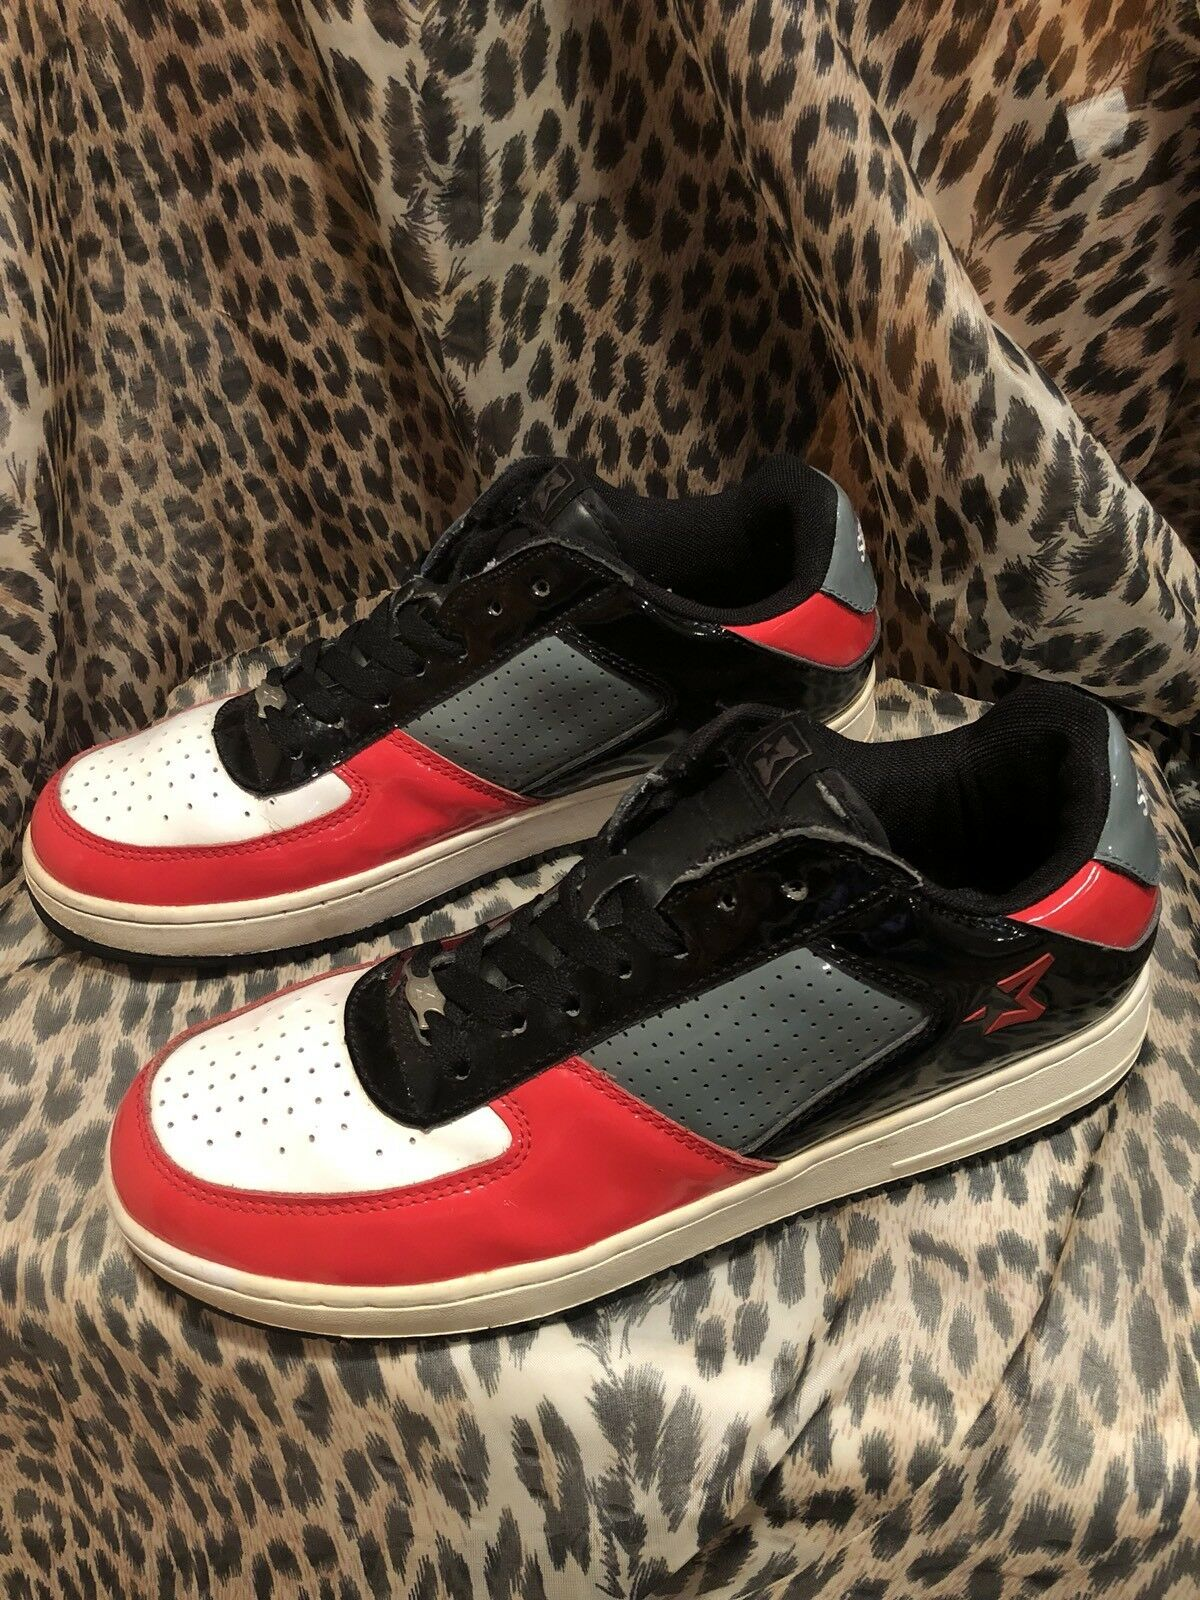 Vintage Starbury Sneakers Mens Patent Leather Red Gray White Sneakers Starbury 21763 Size 10.5 b6d459